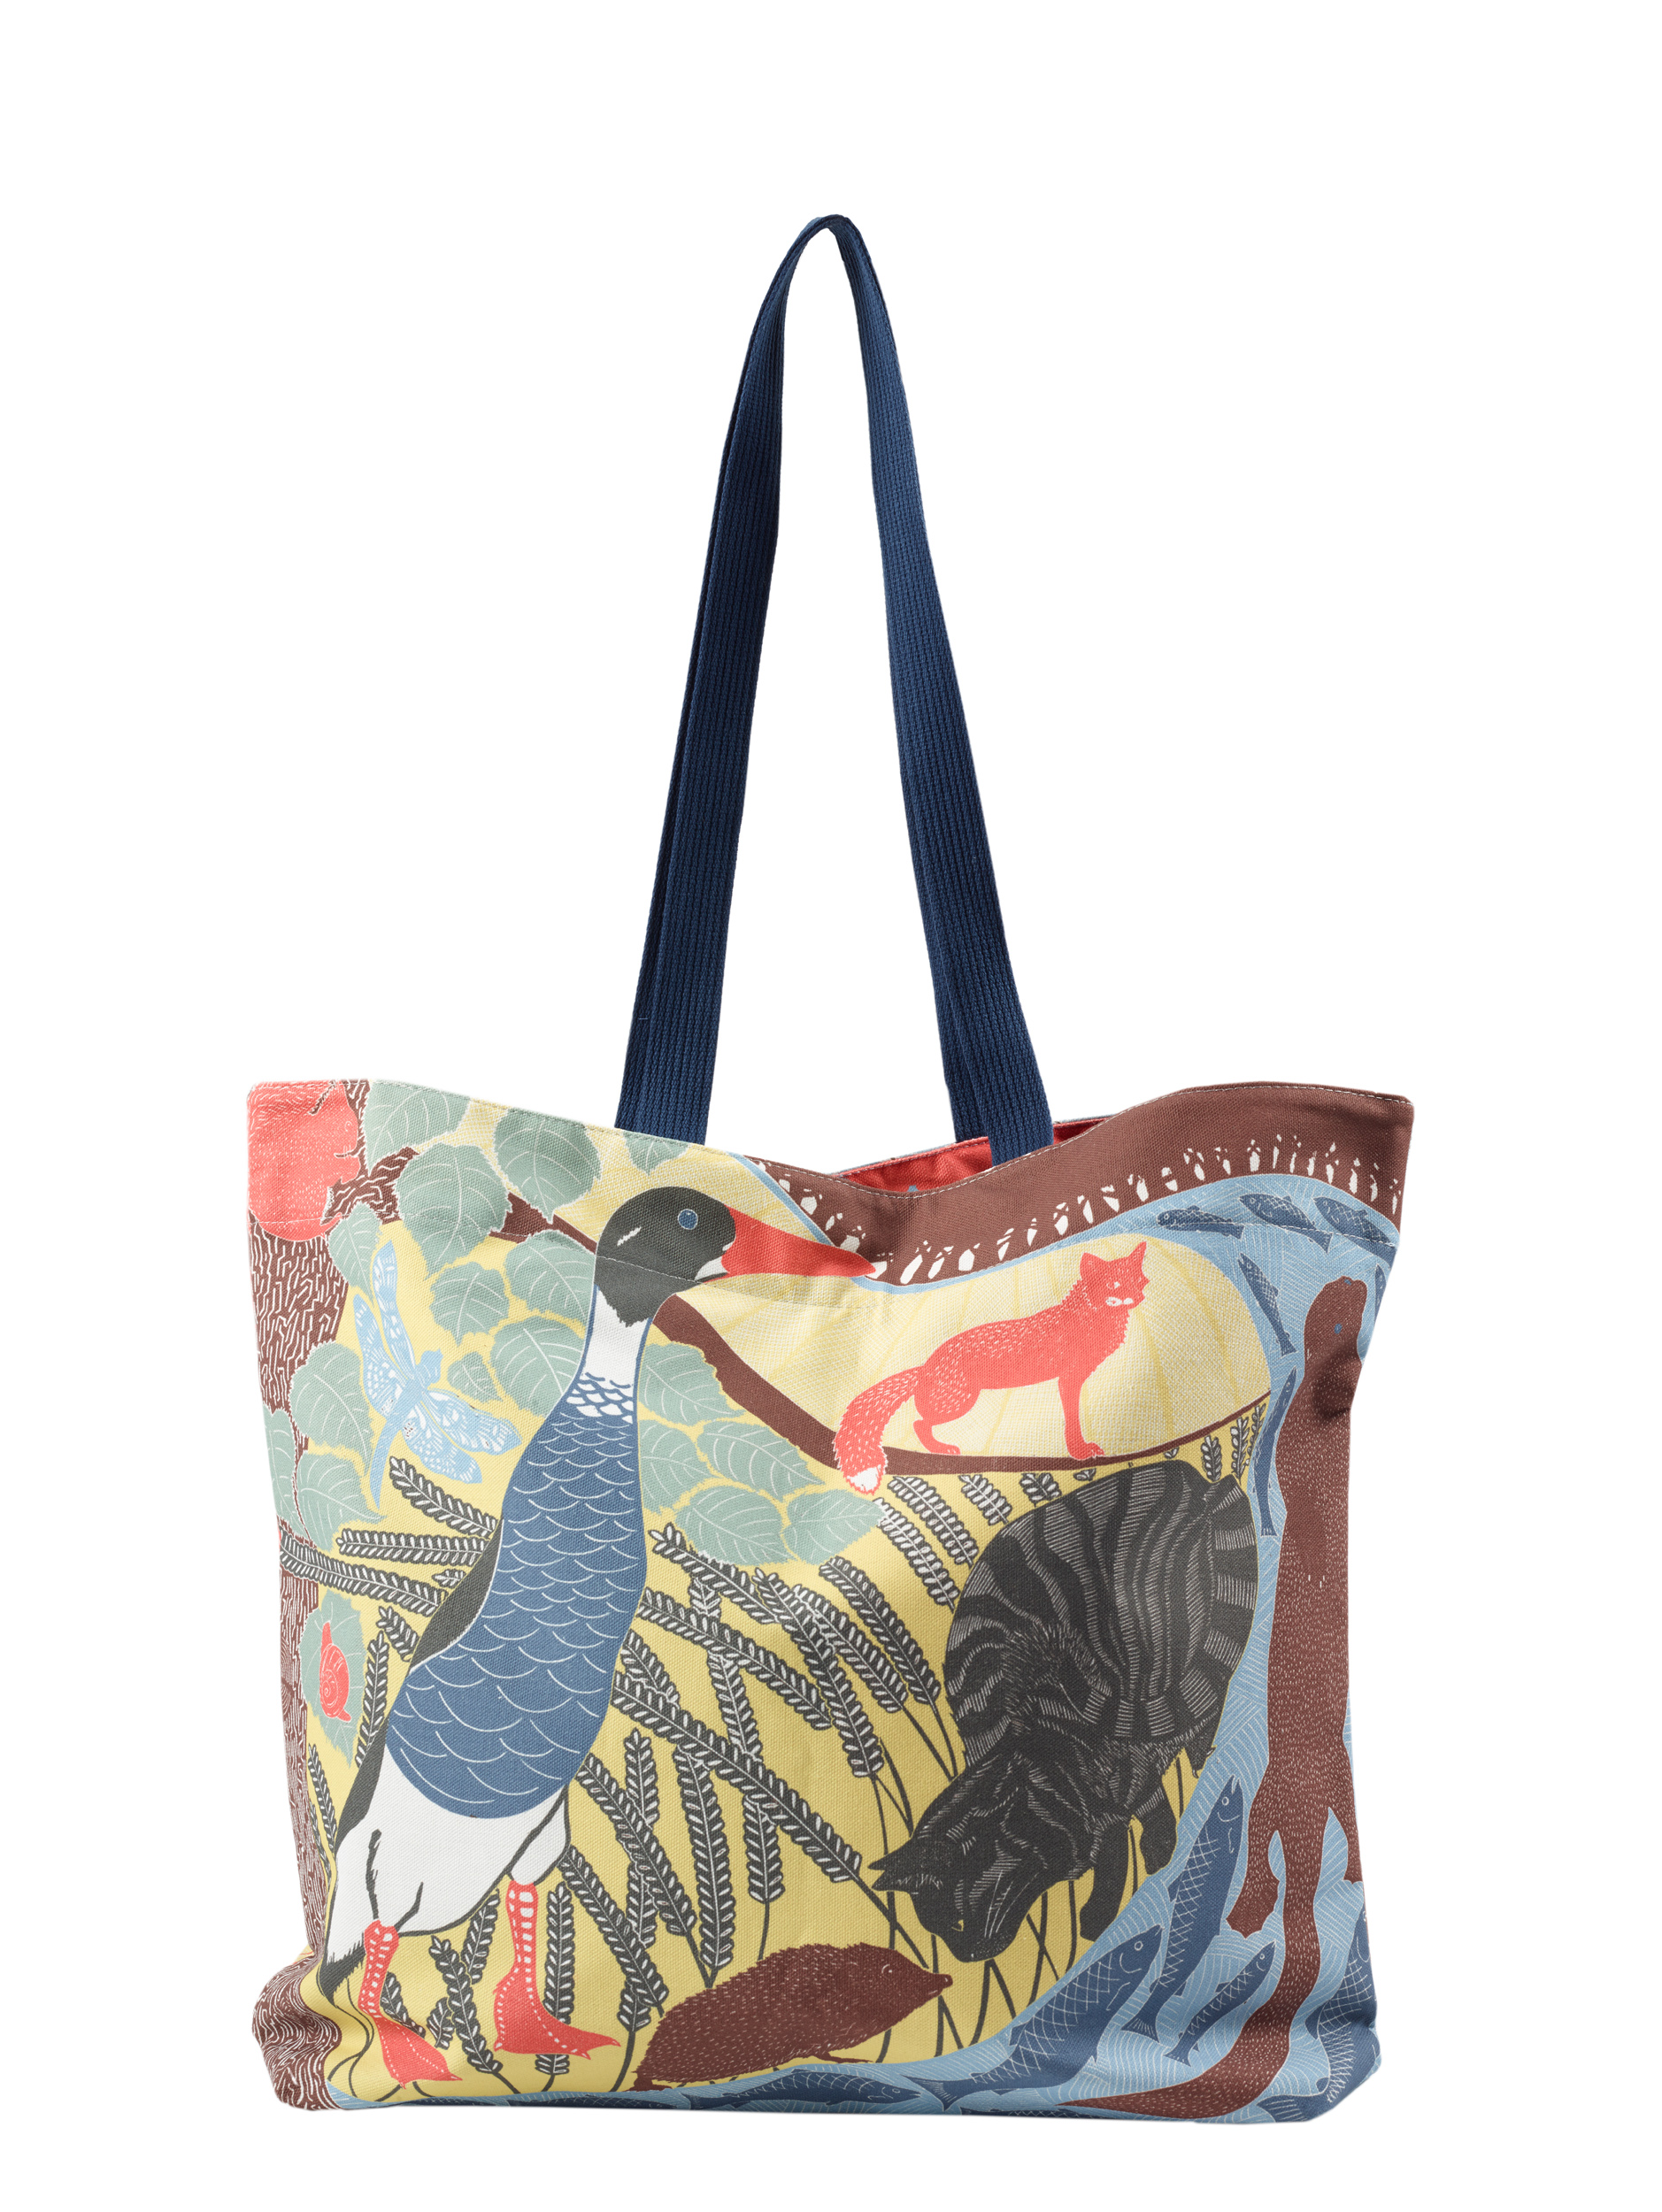 Babs Pease Illustrated Animal Tote Bag